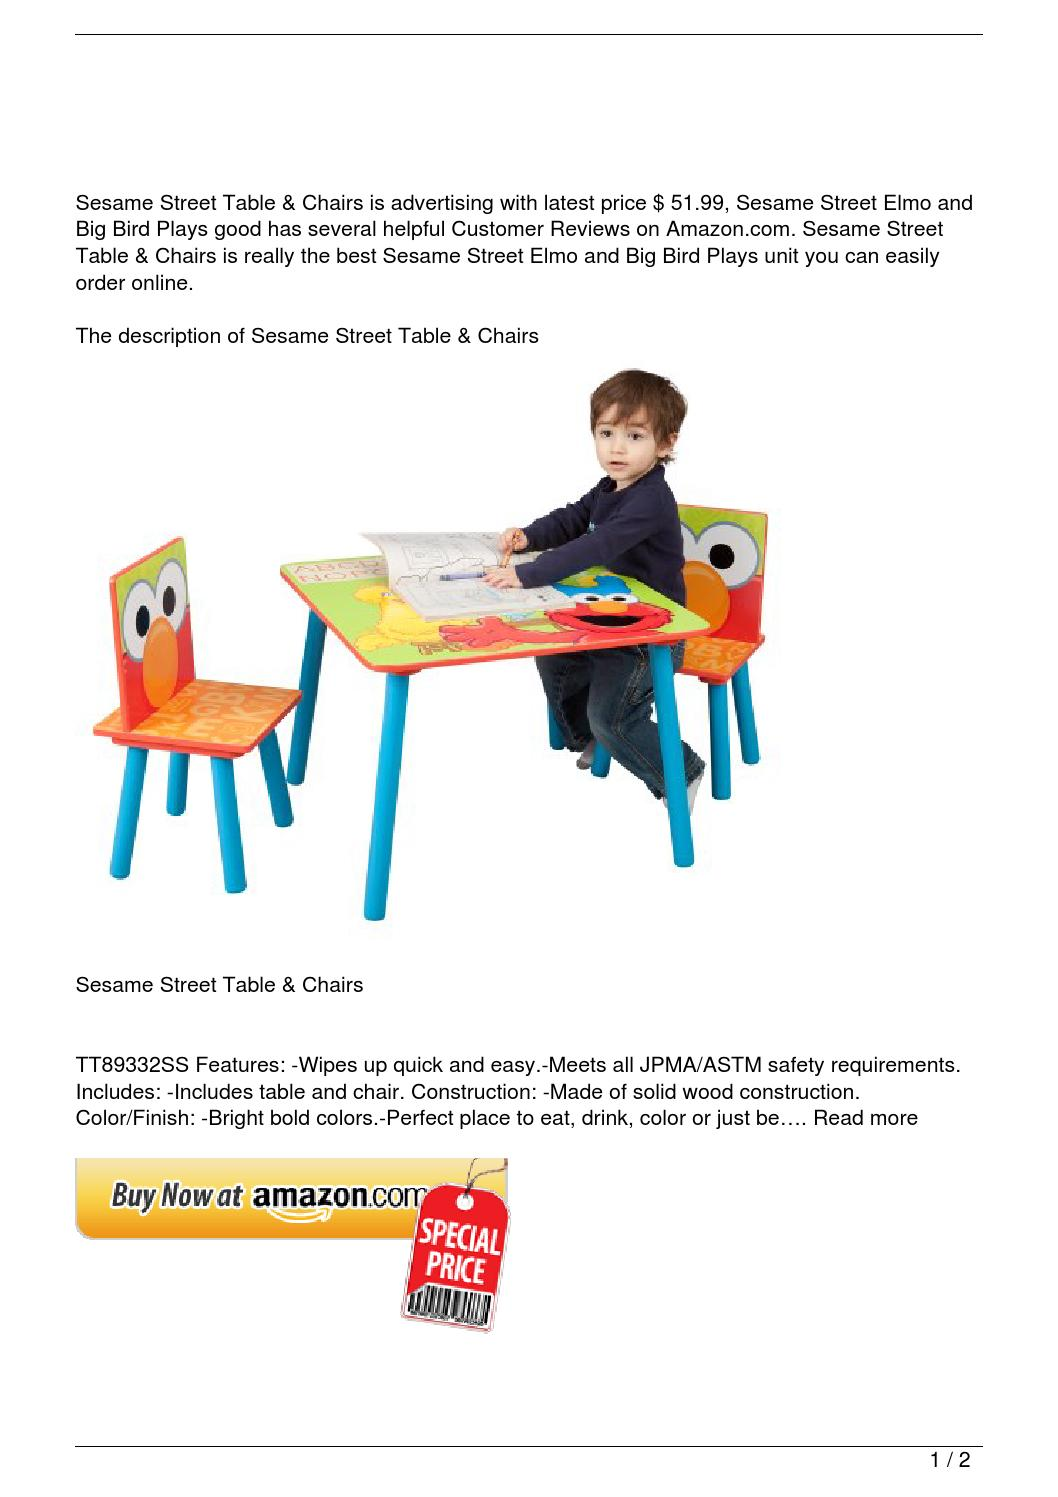 sesame street table and chairs animal print parson chair slipcovers discount by le trung nghia